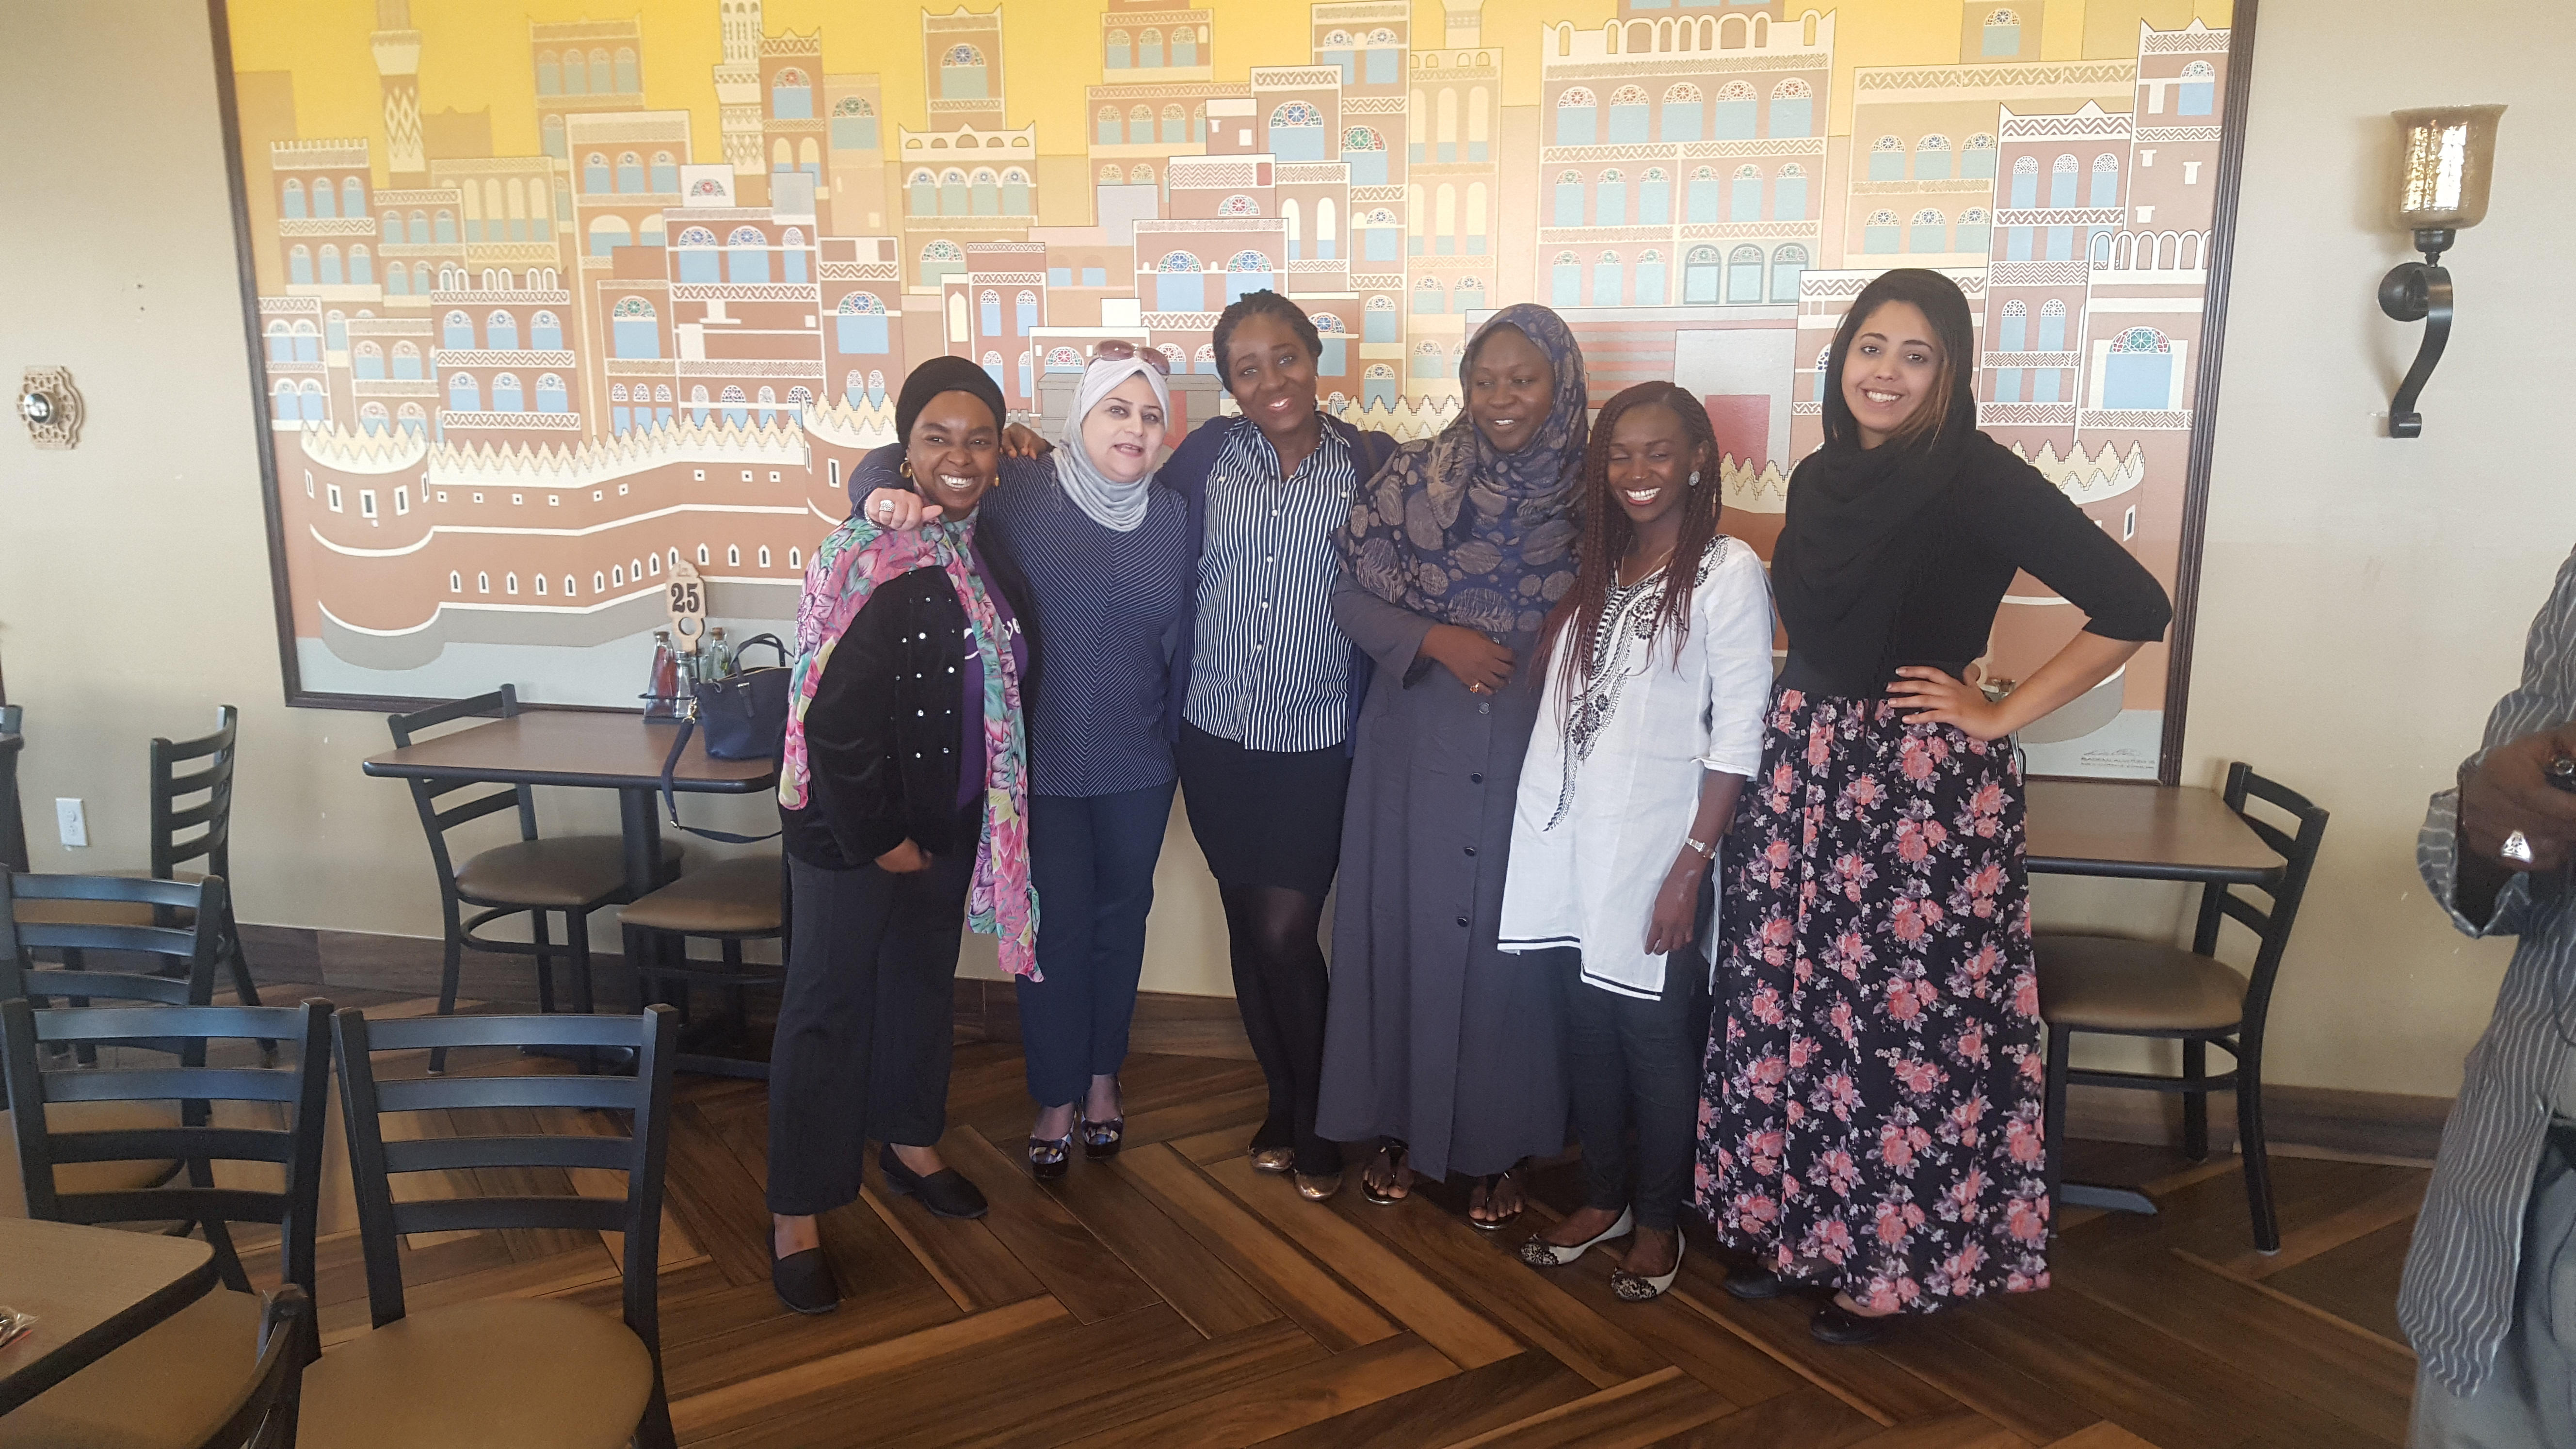 IVLP participants take a photo with Ms. Laila Alhusini, anchor of US Arab Radio (on the right) at Sheeba Restaurant.